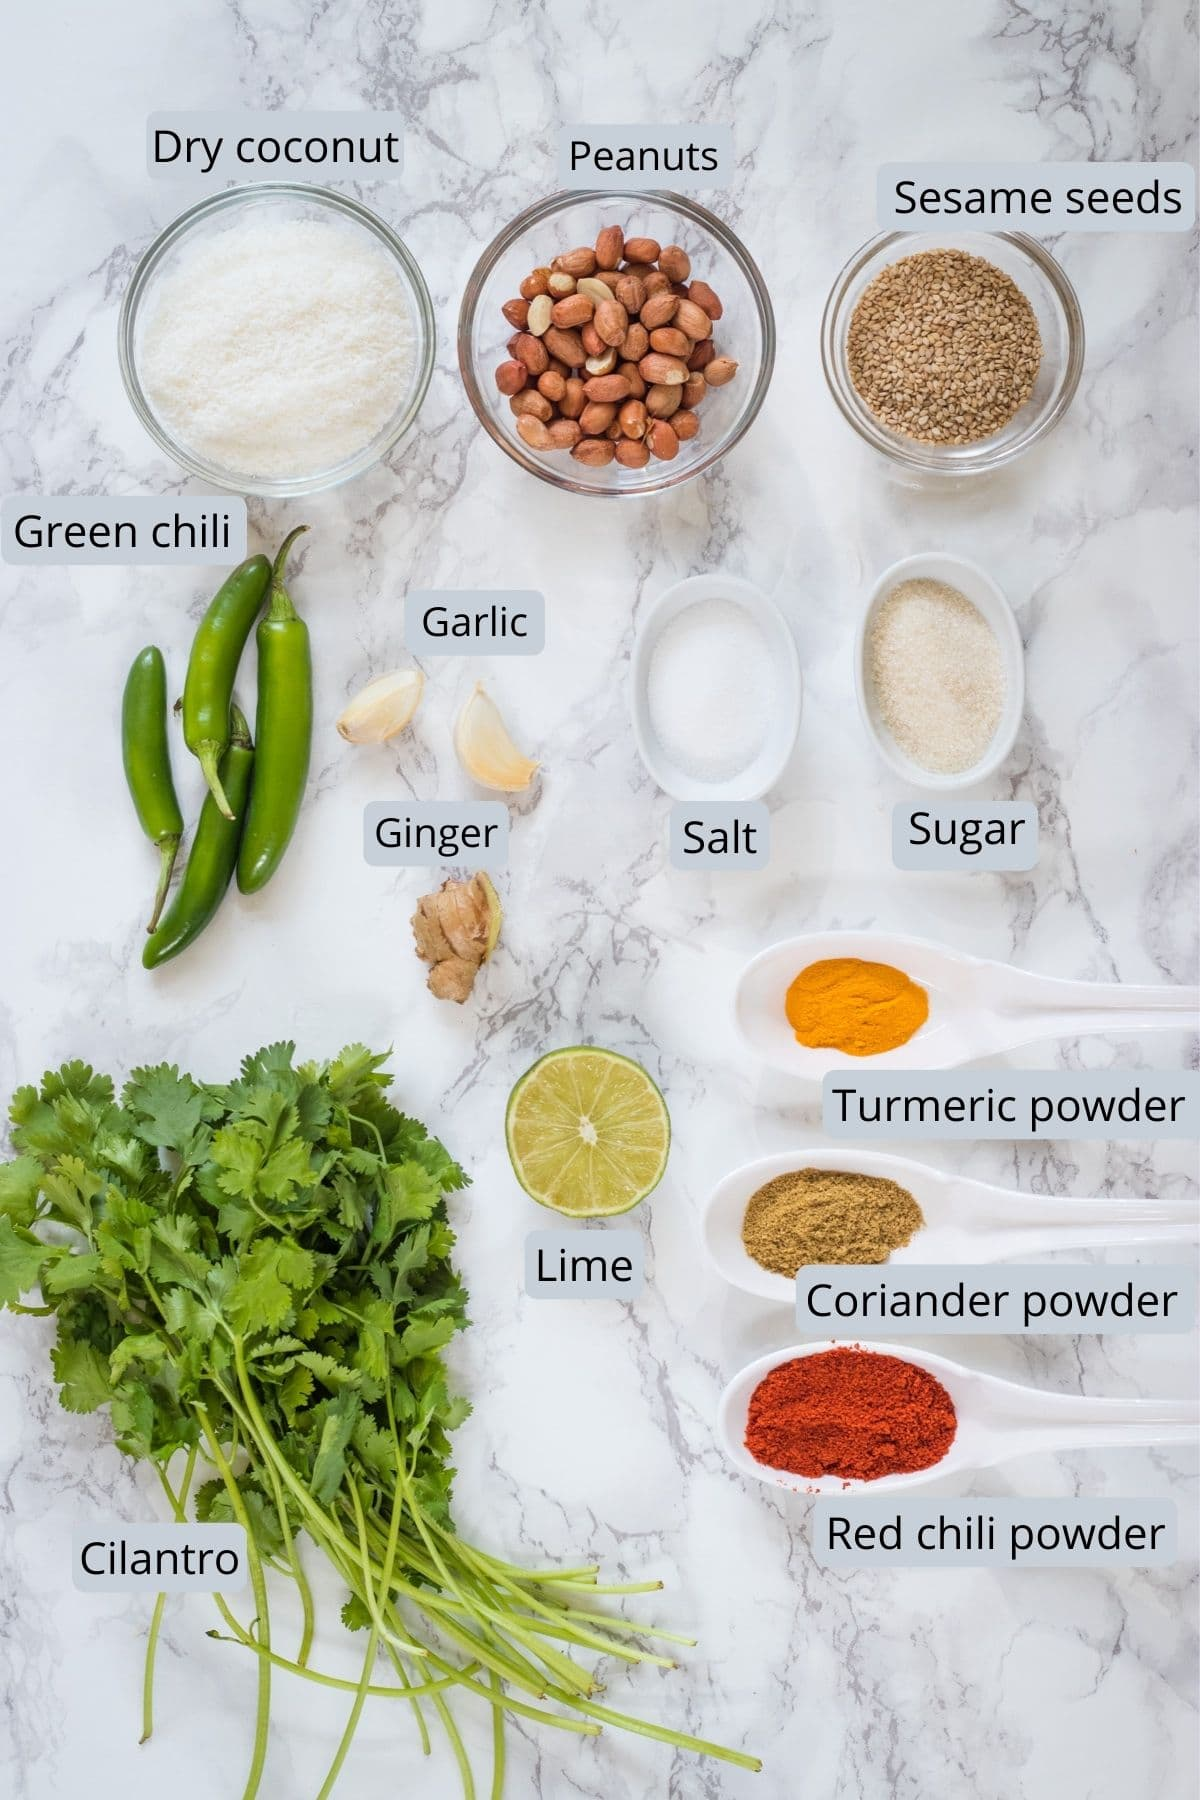 Ingredients used in green masala includes coconut, peanuts, sesame, chilies, ginger, garlic, cilantro, salt, sugar and spices.